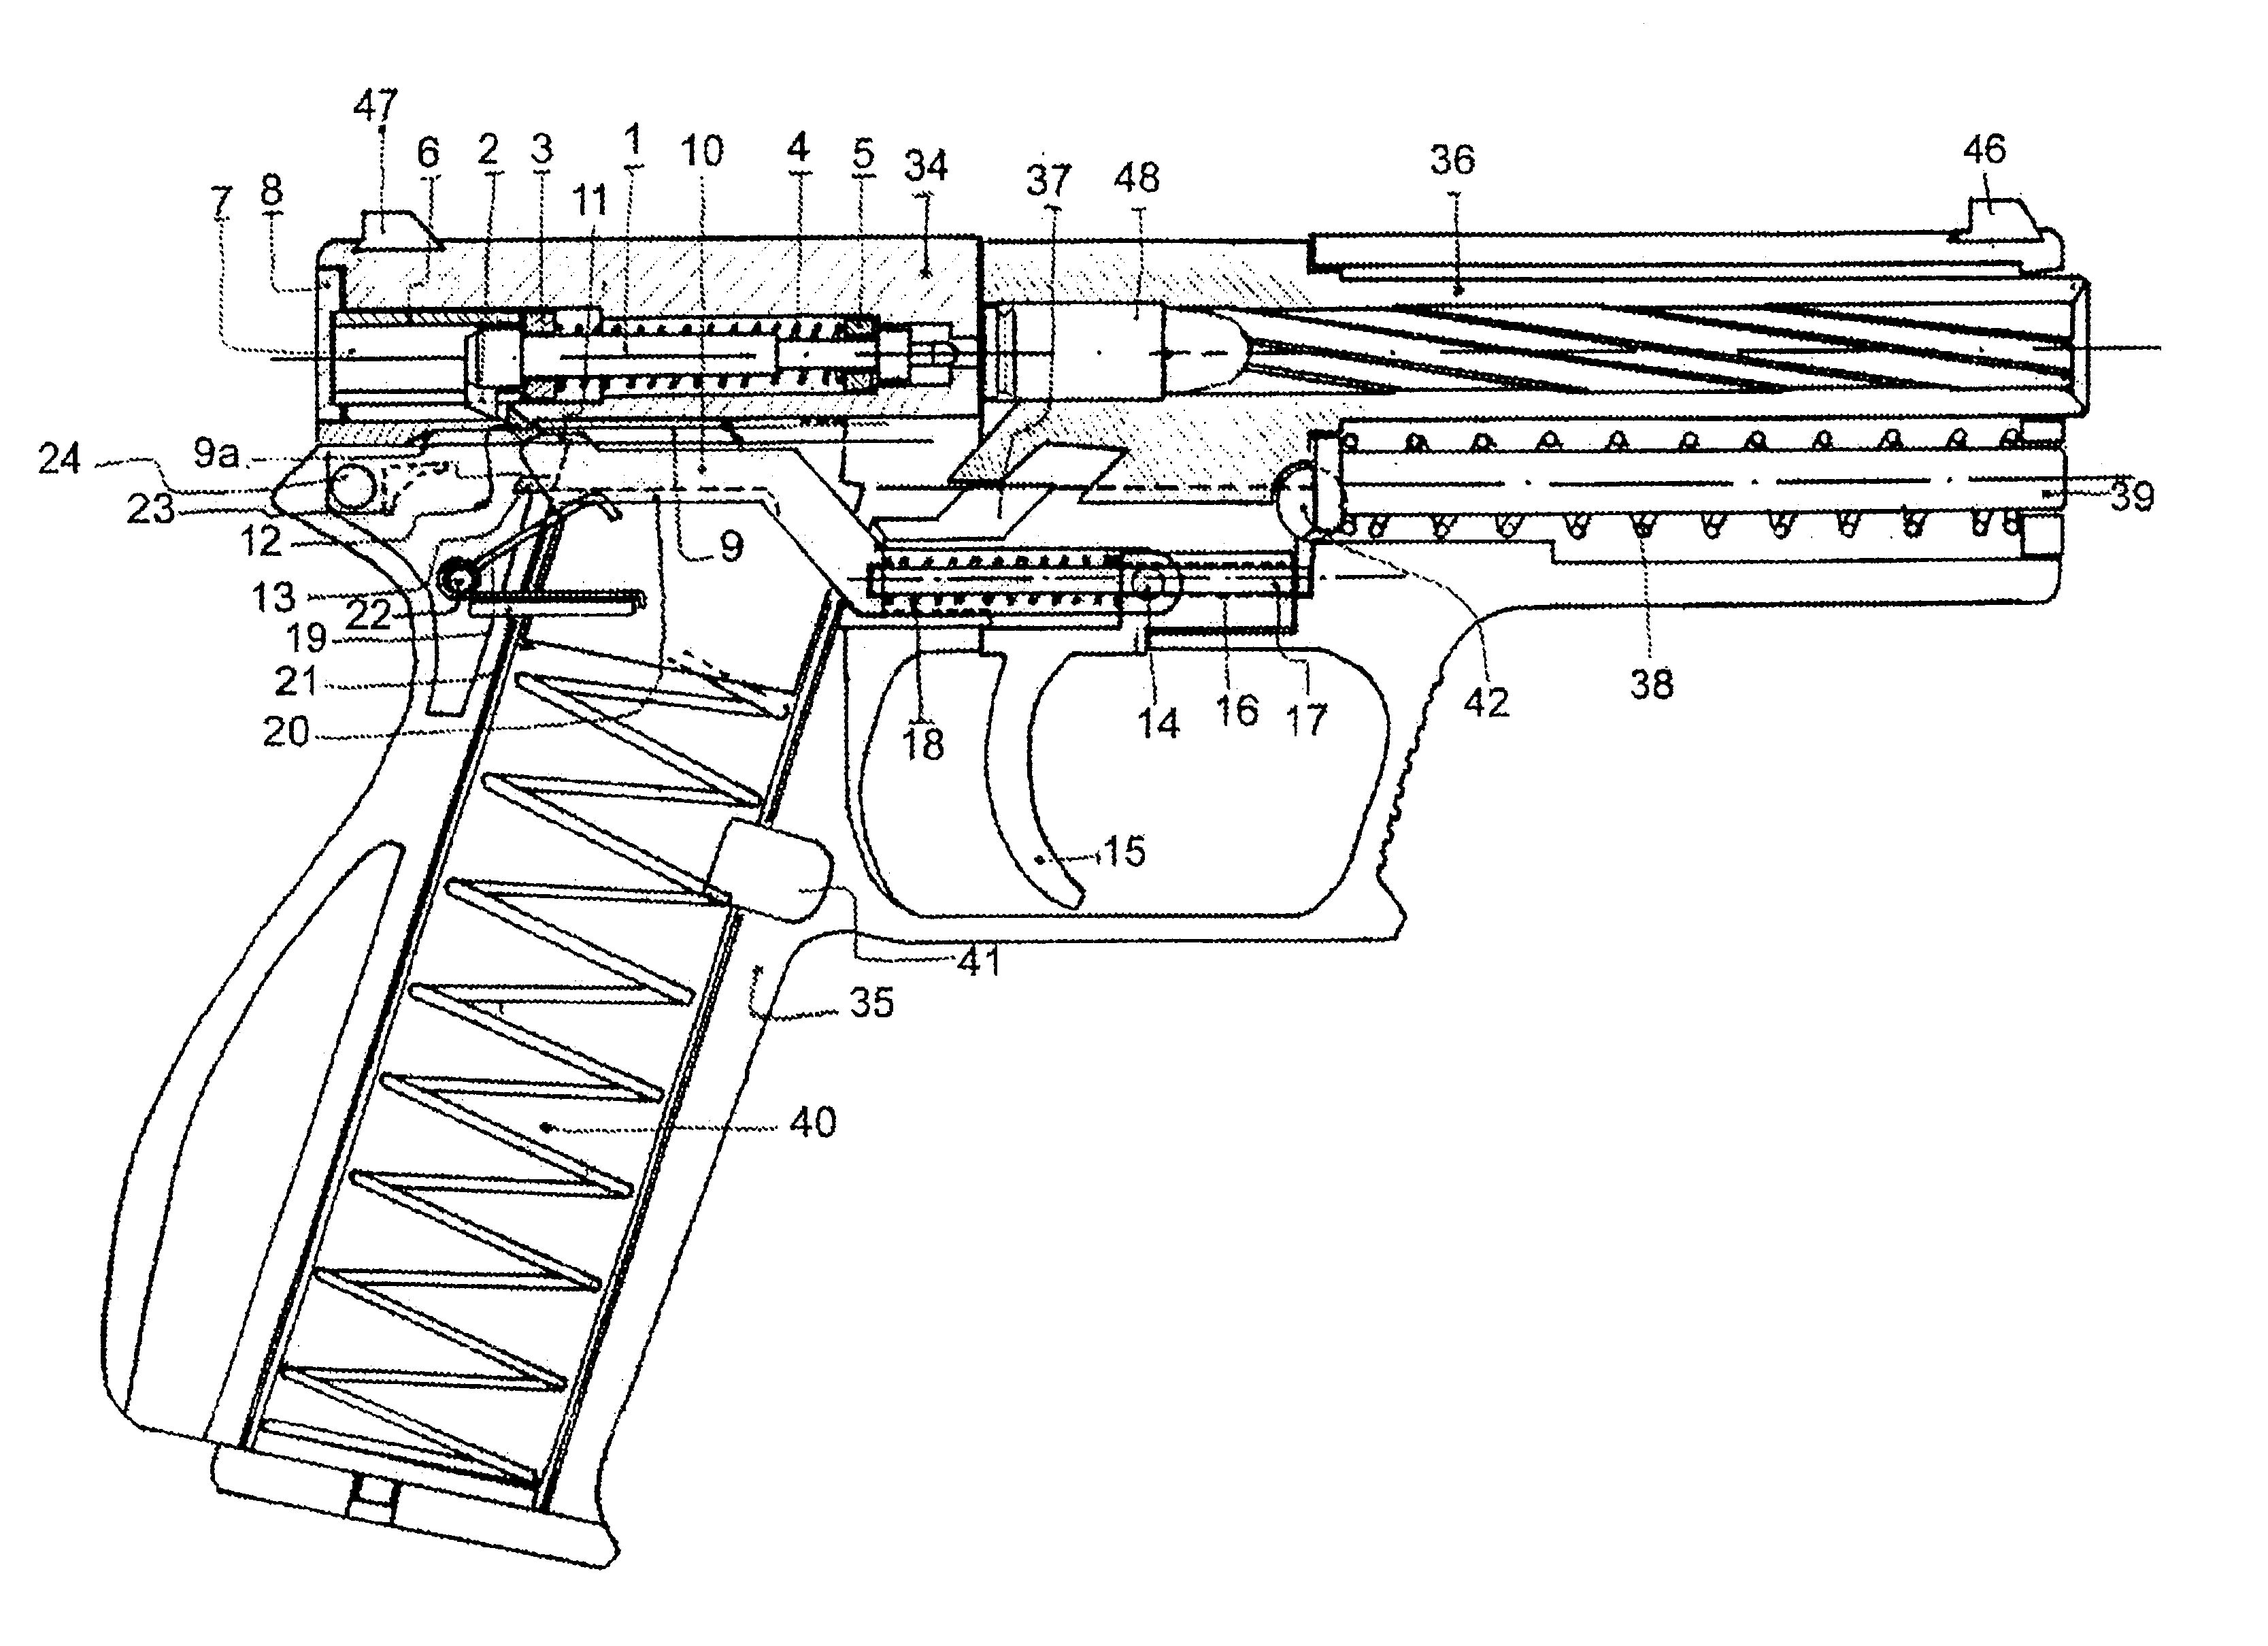 small resolution of striker trigger mechanism for automatic and semi automatic firearms